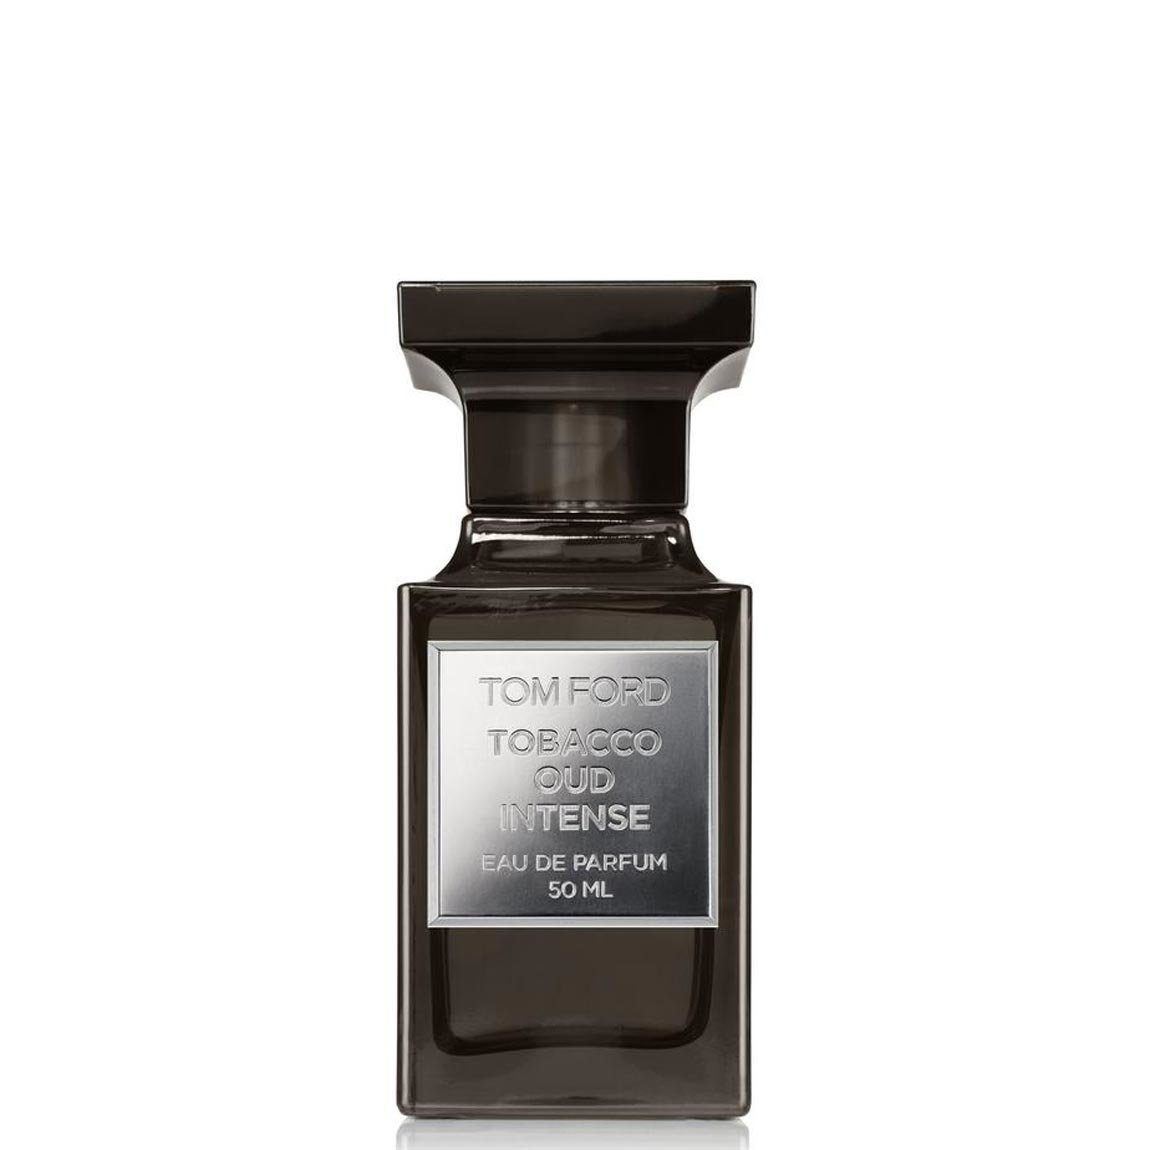 tom ford tobacco oud intense edp beautylish. Black Bedroom Furniture Sets. Home Design Ideas